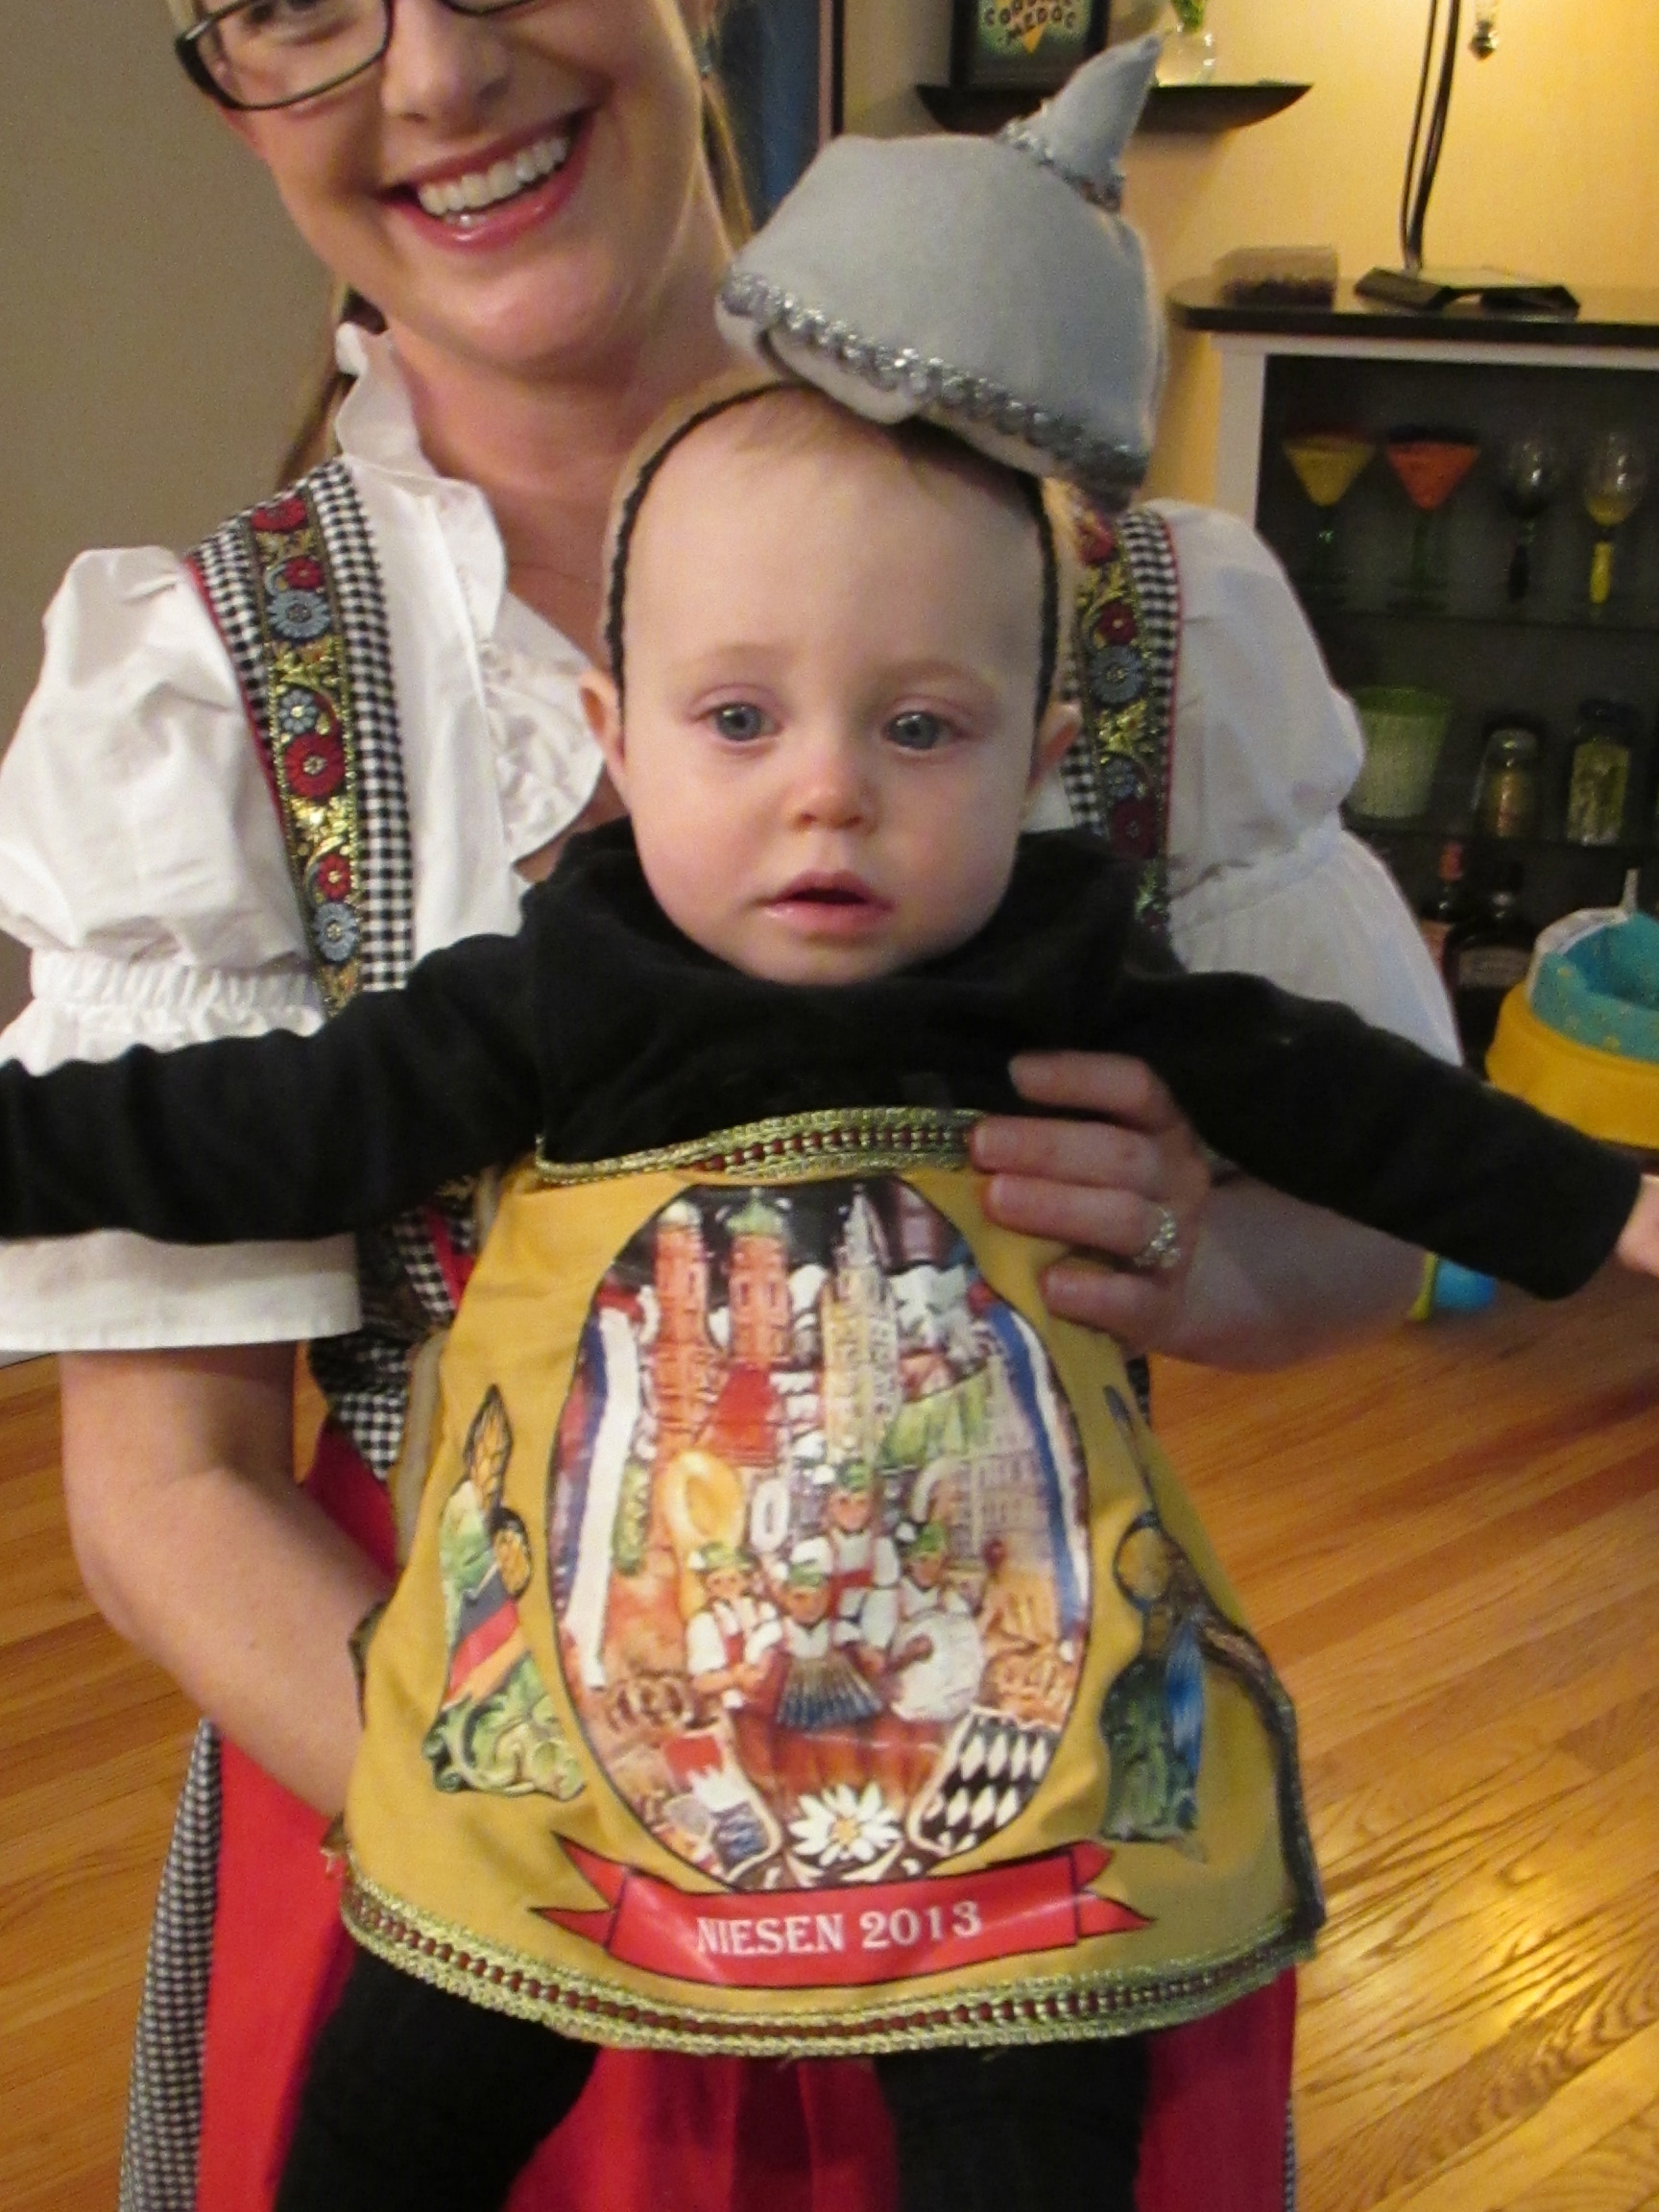 Baby Model München Halloween 2013 German Beer Family Prost Emodel Your